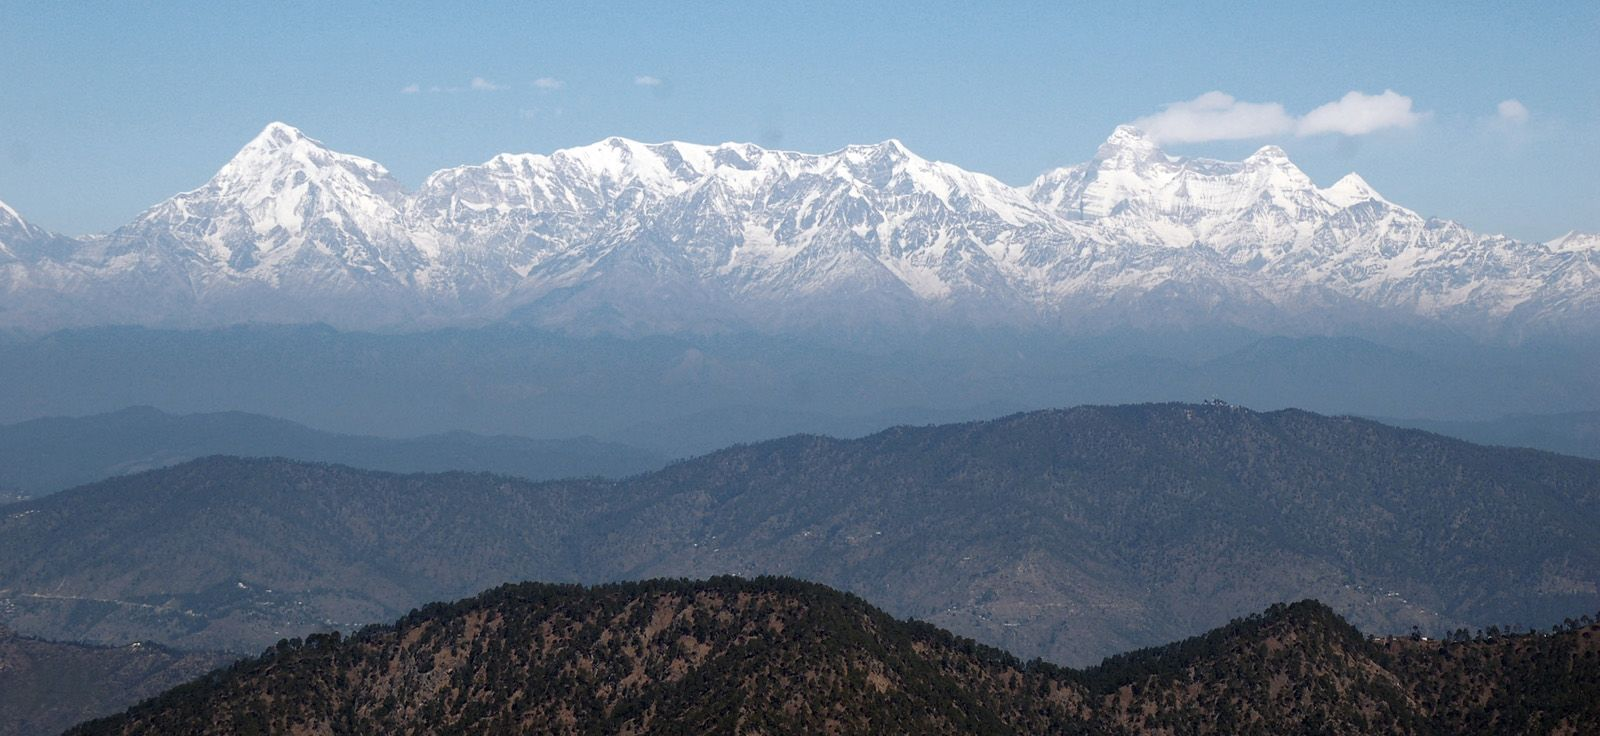 Sweeping views of the snow capped Himalayas